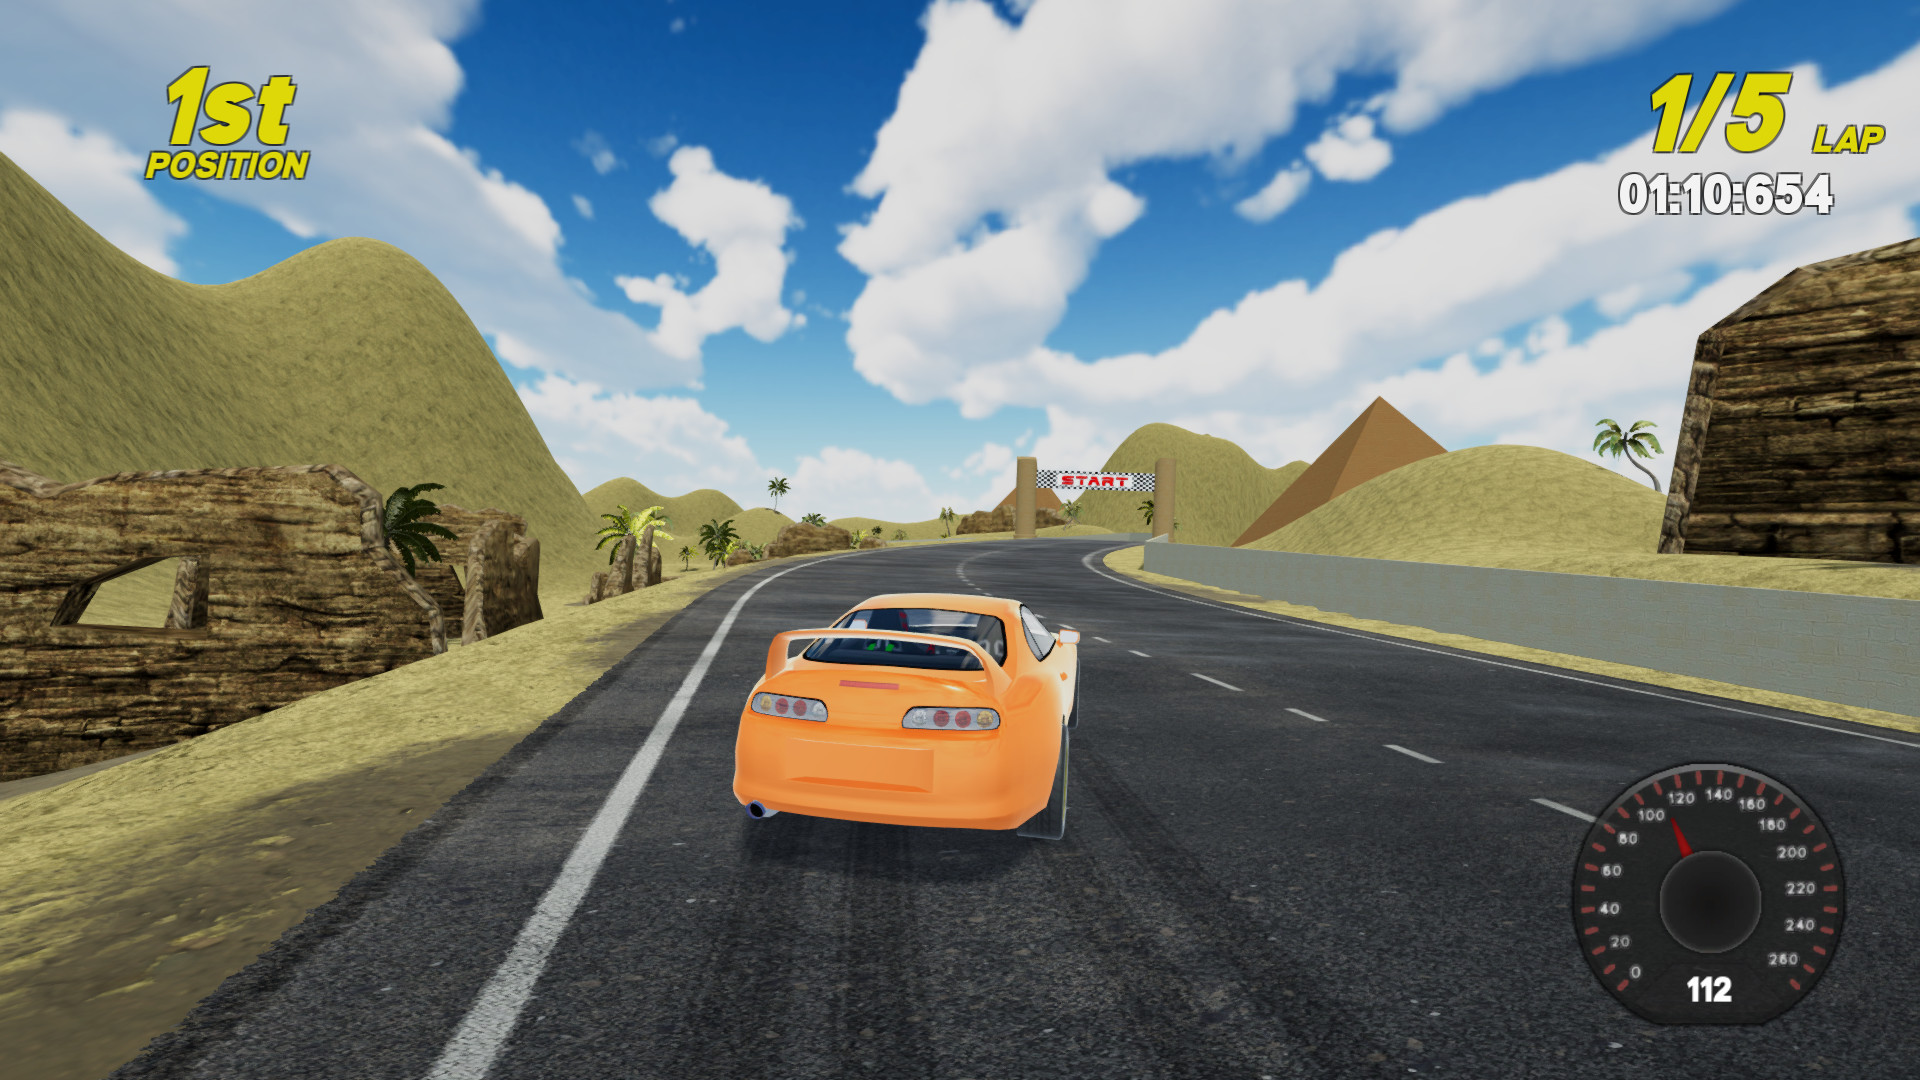 It's A Racing Game Free Download